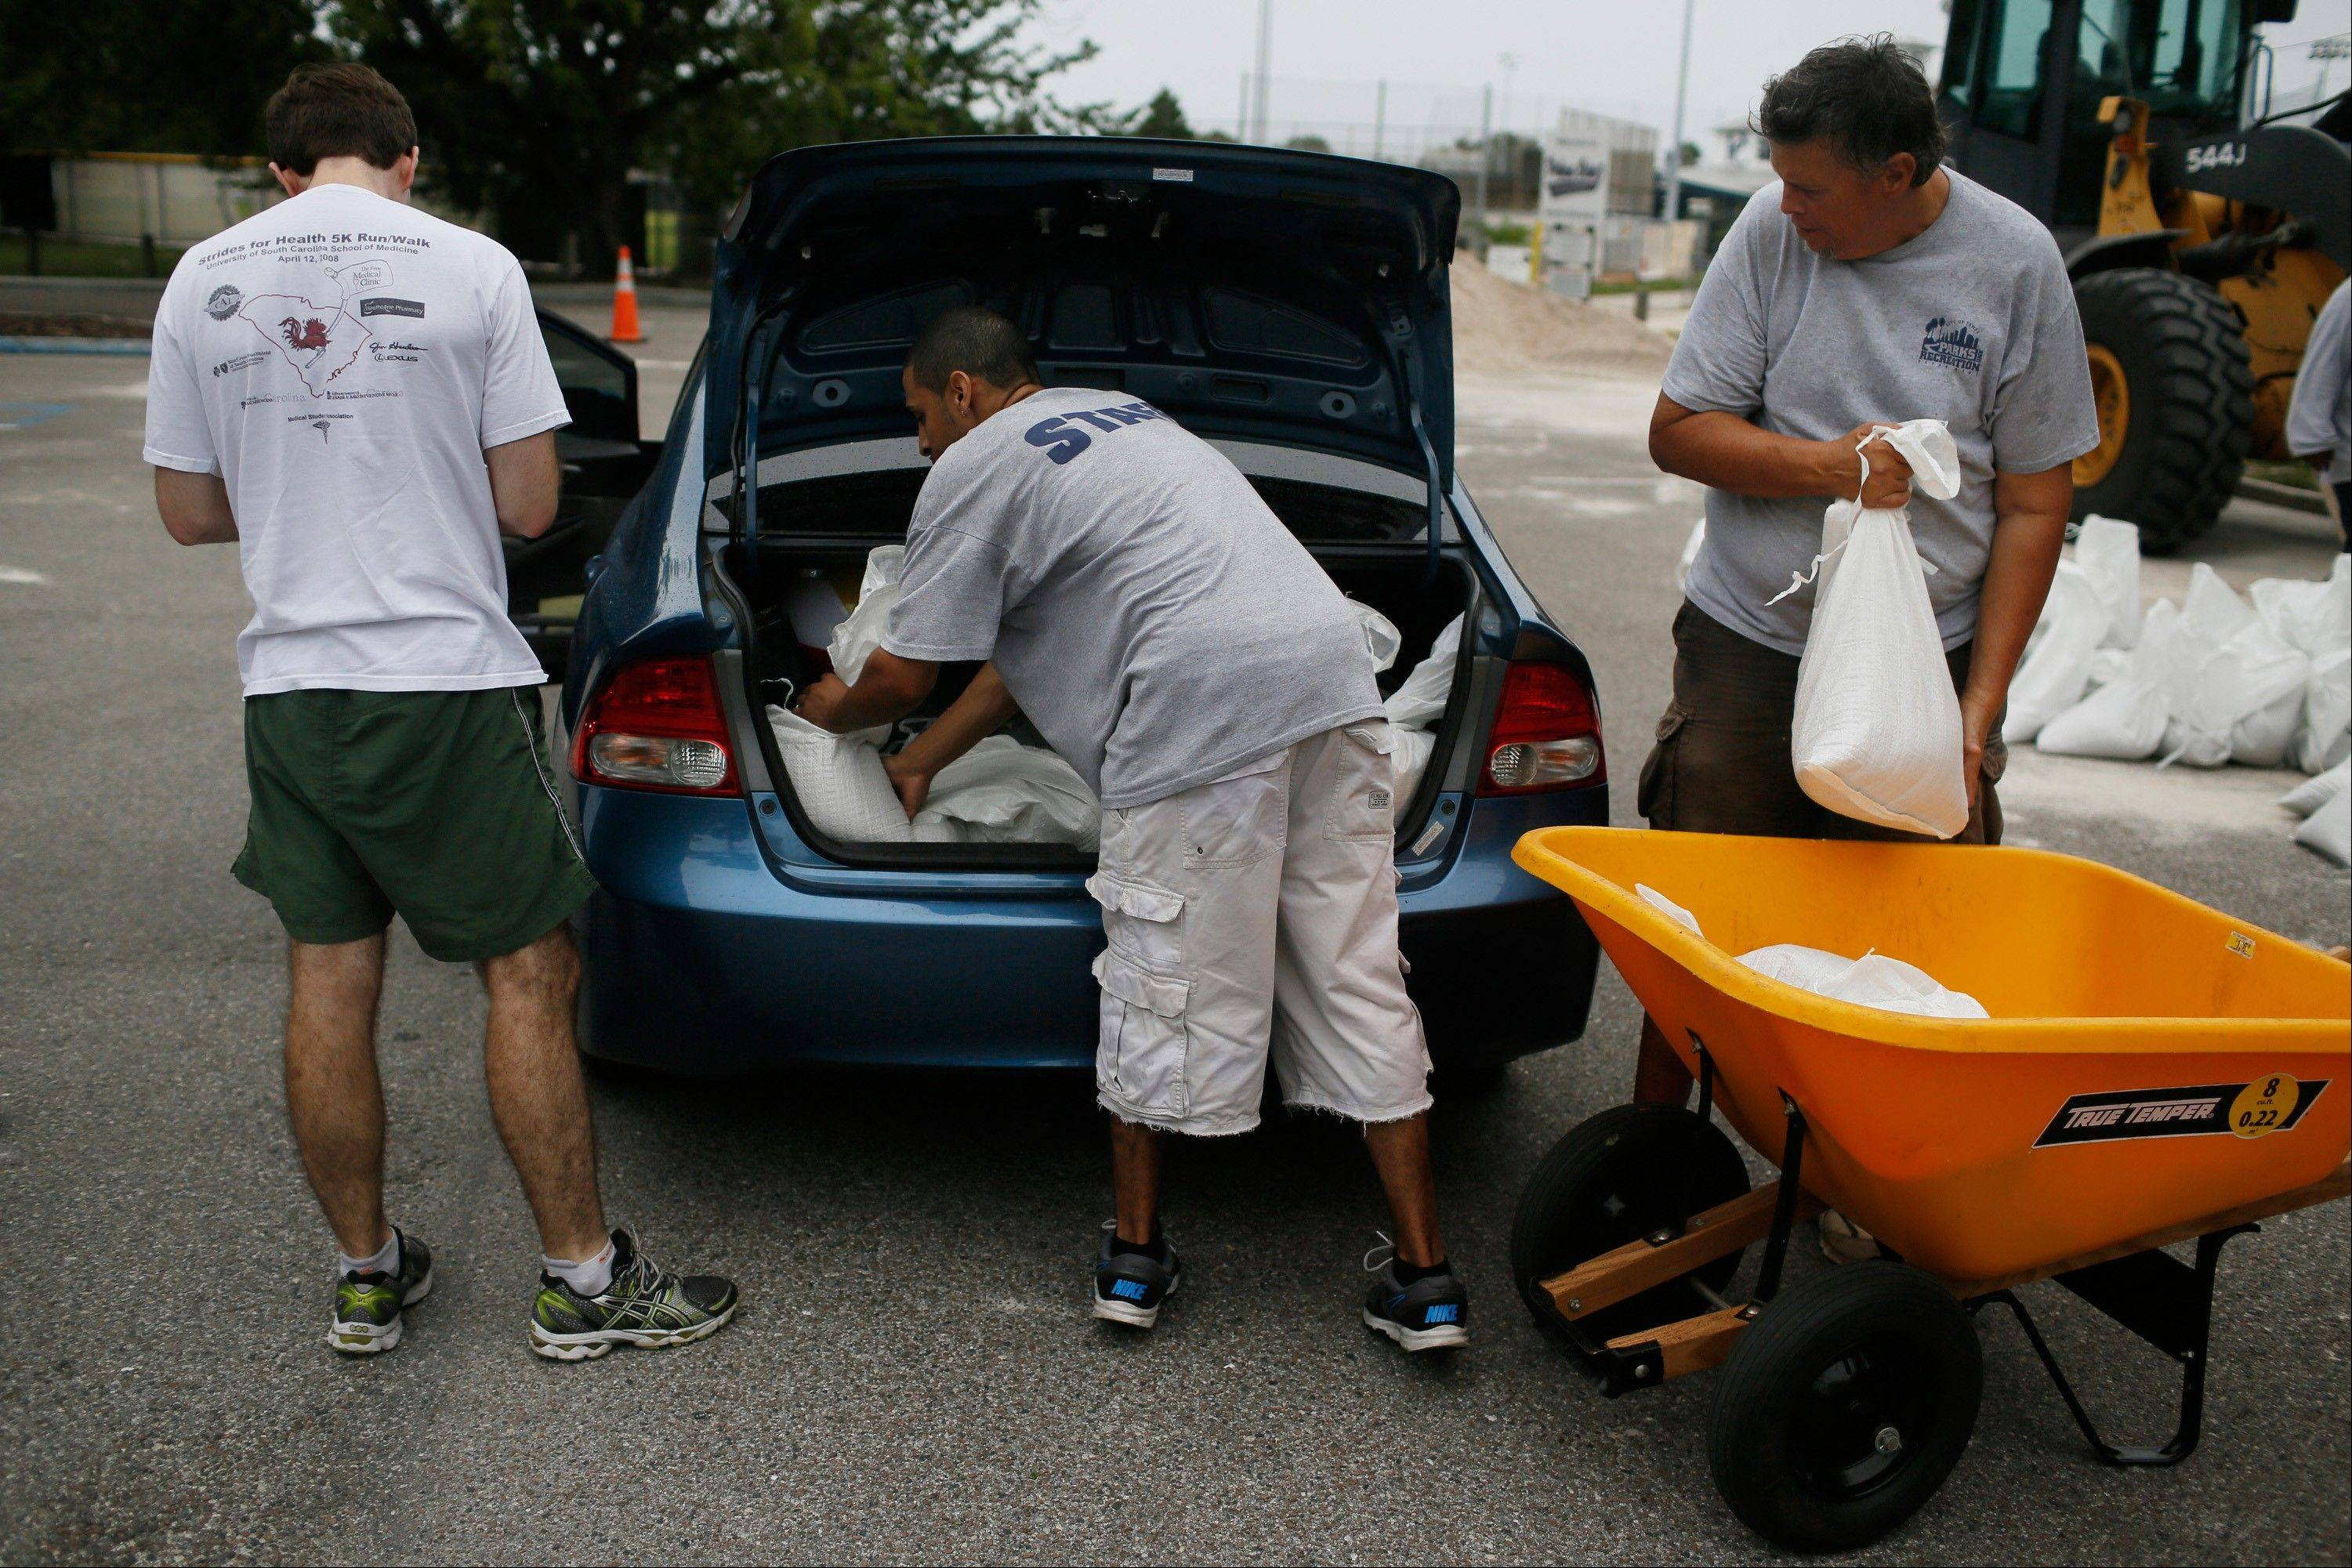 City of Tampa workers put sand bags in the boot of a vehicle in Tampa, Fla., on Sunday, Aug. 26. Tropical Storm Isaac regained strength as it entered the Gulf of Mexico, forcing oil and gas production sites in its path to close and threatening the coasts of four U.S. states with a possible Category-2 hurricane.